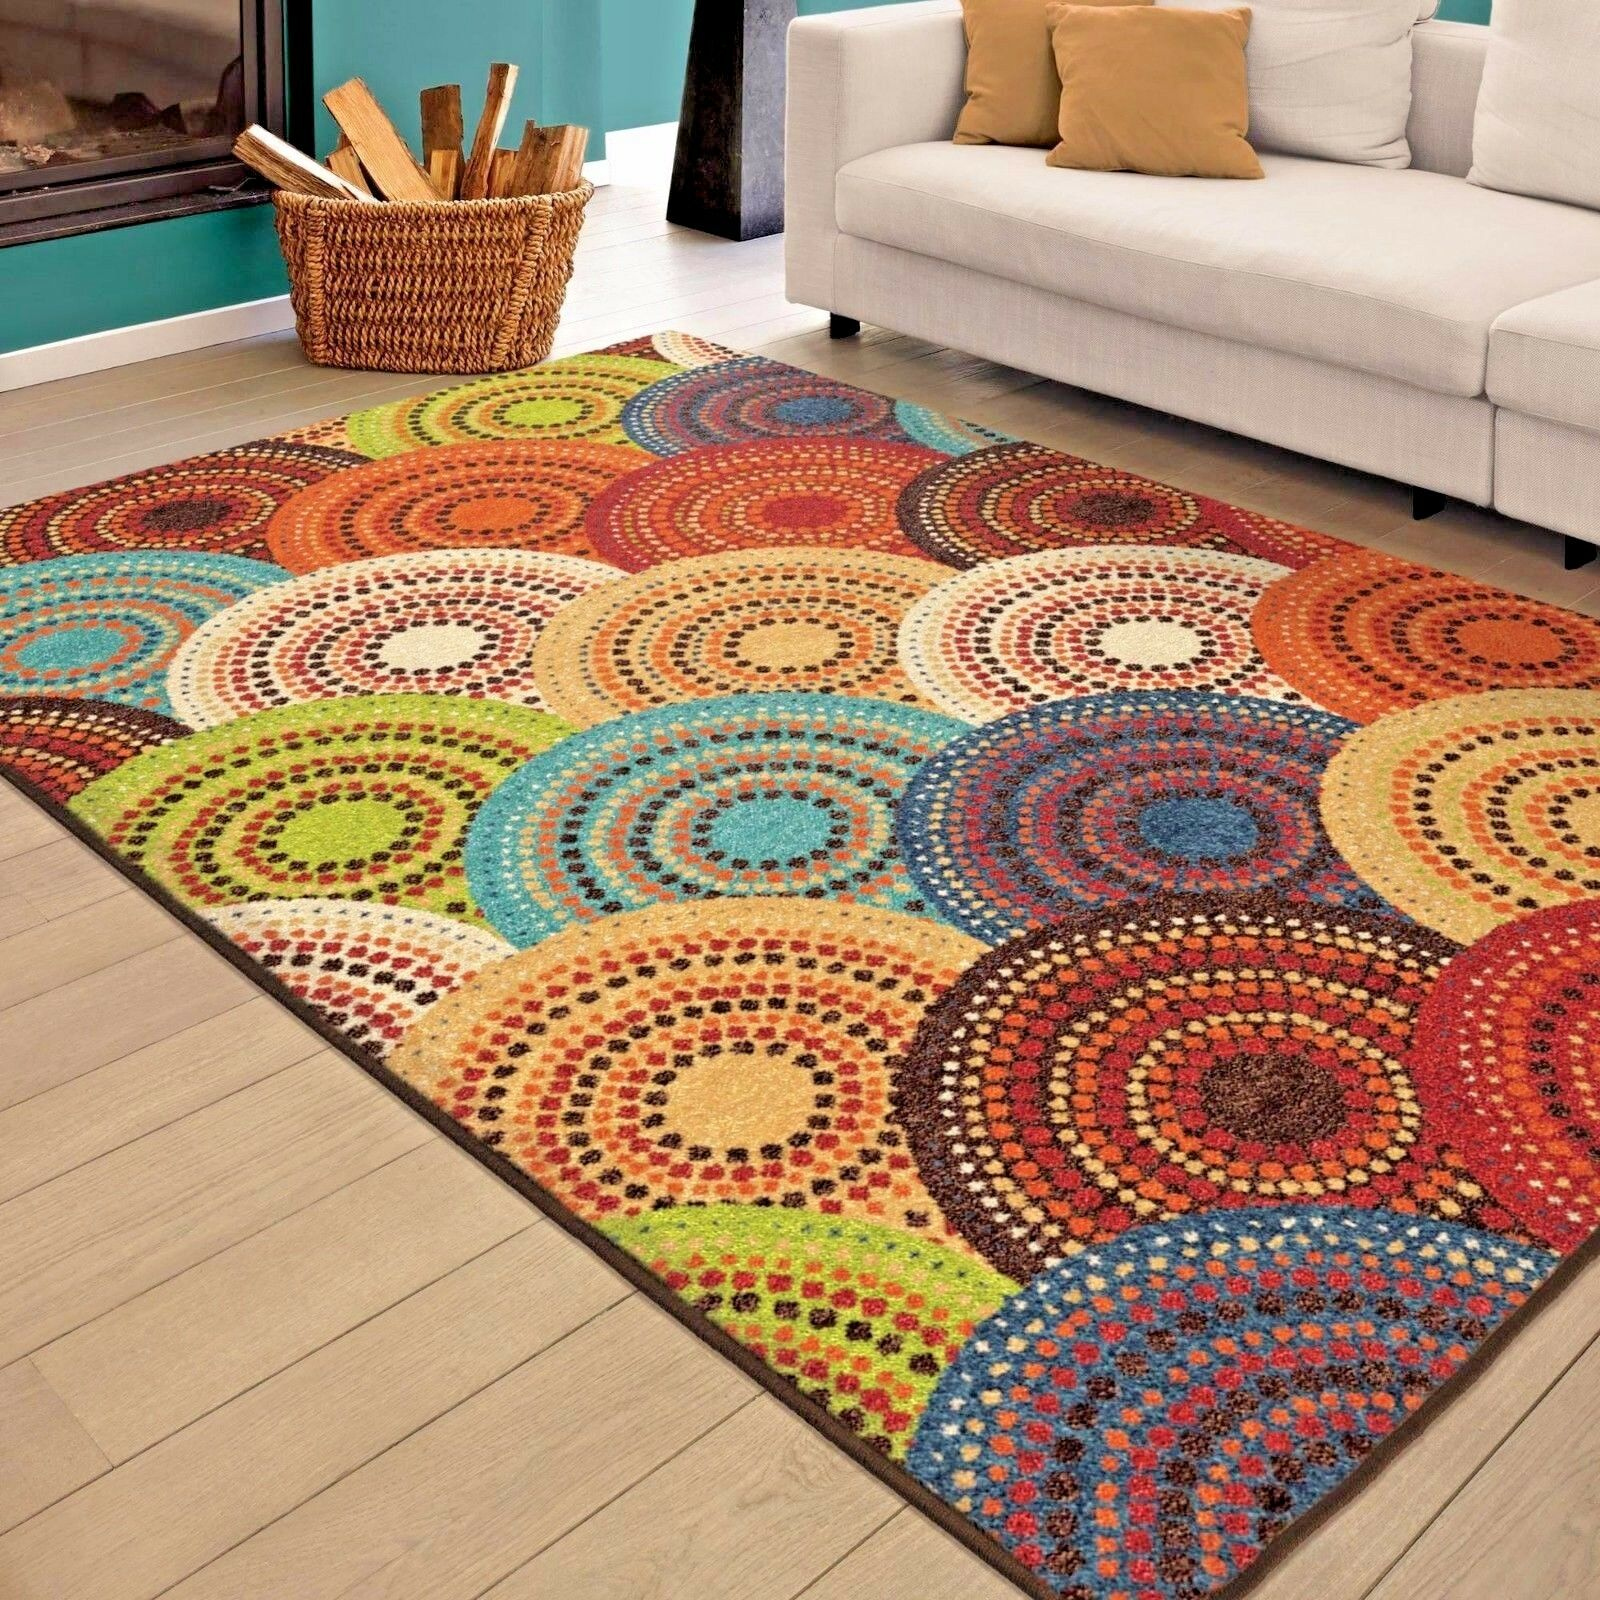 Rugs area rugs carpet 8x10 area rug floor modern colorful How to buy an area rug for living room